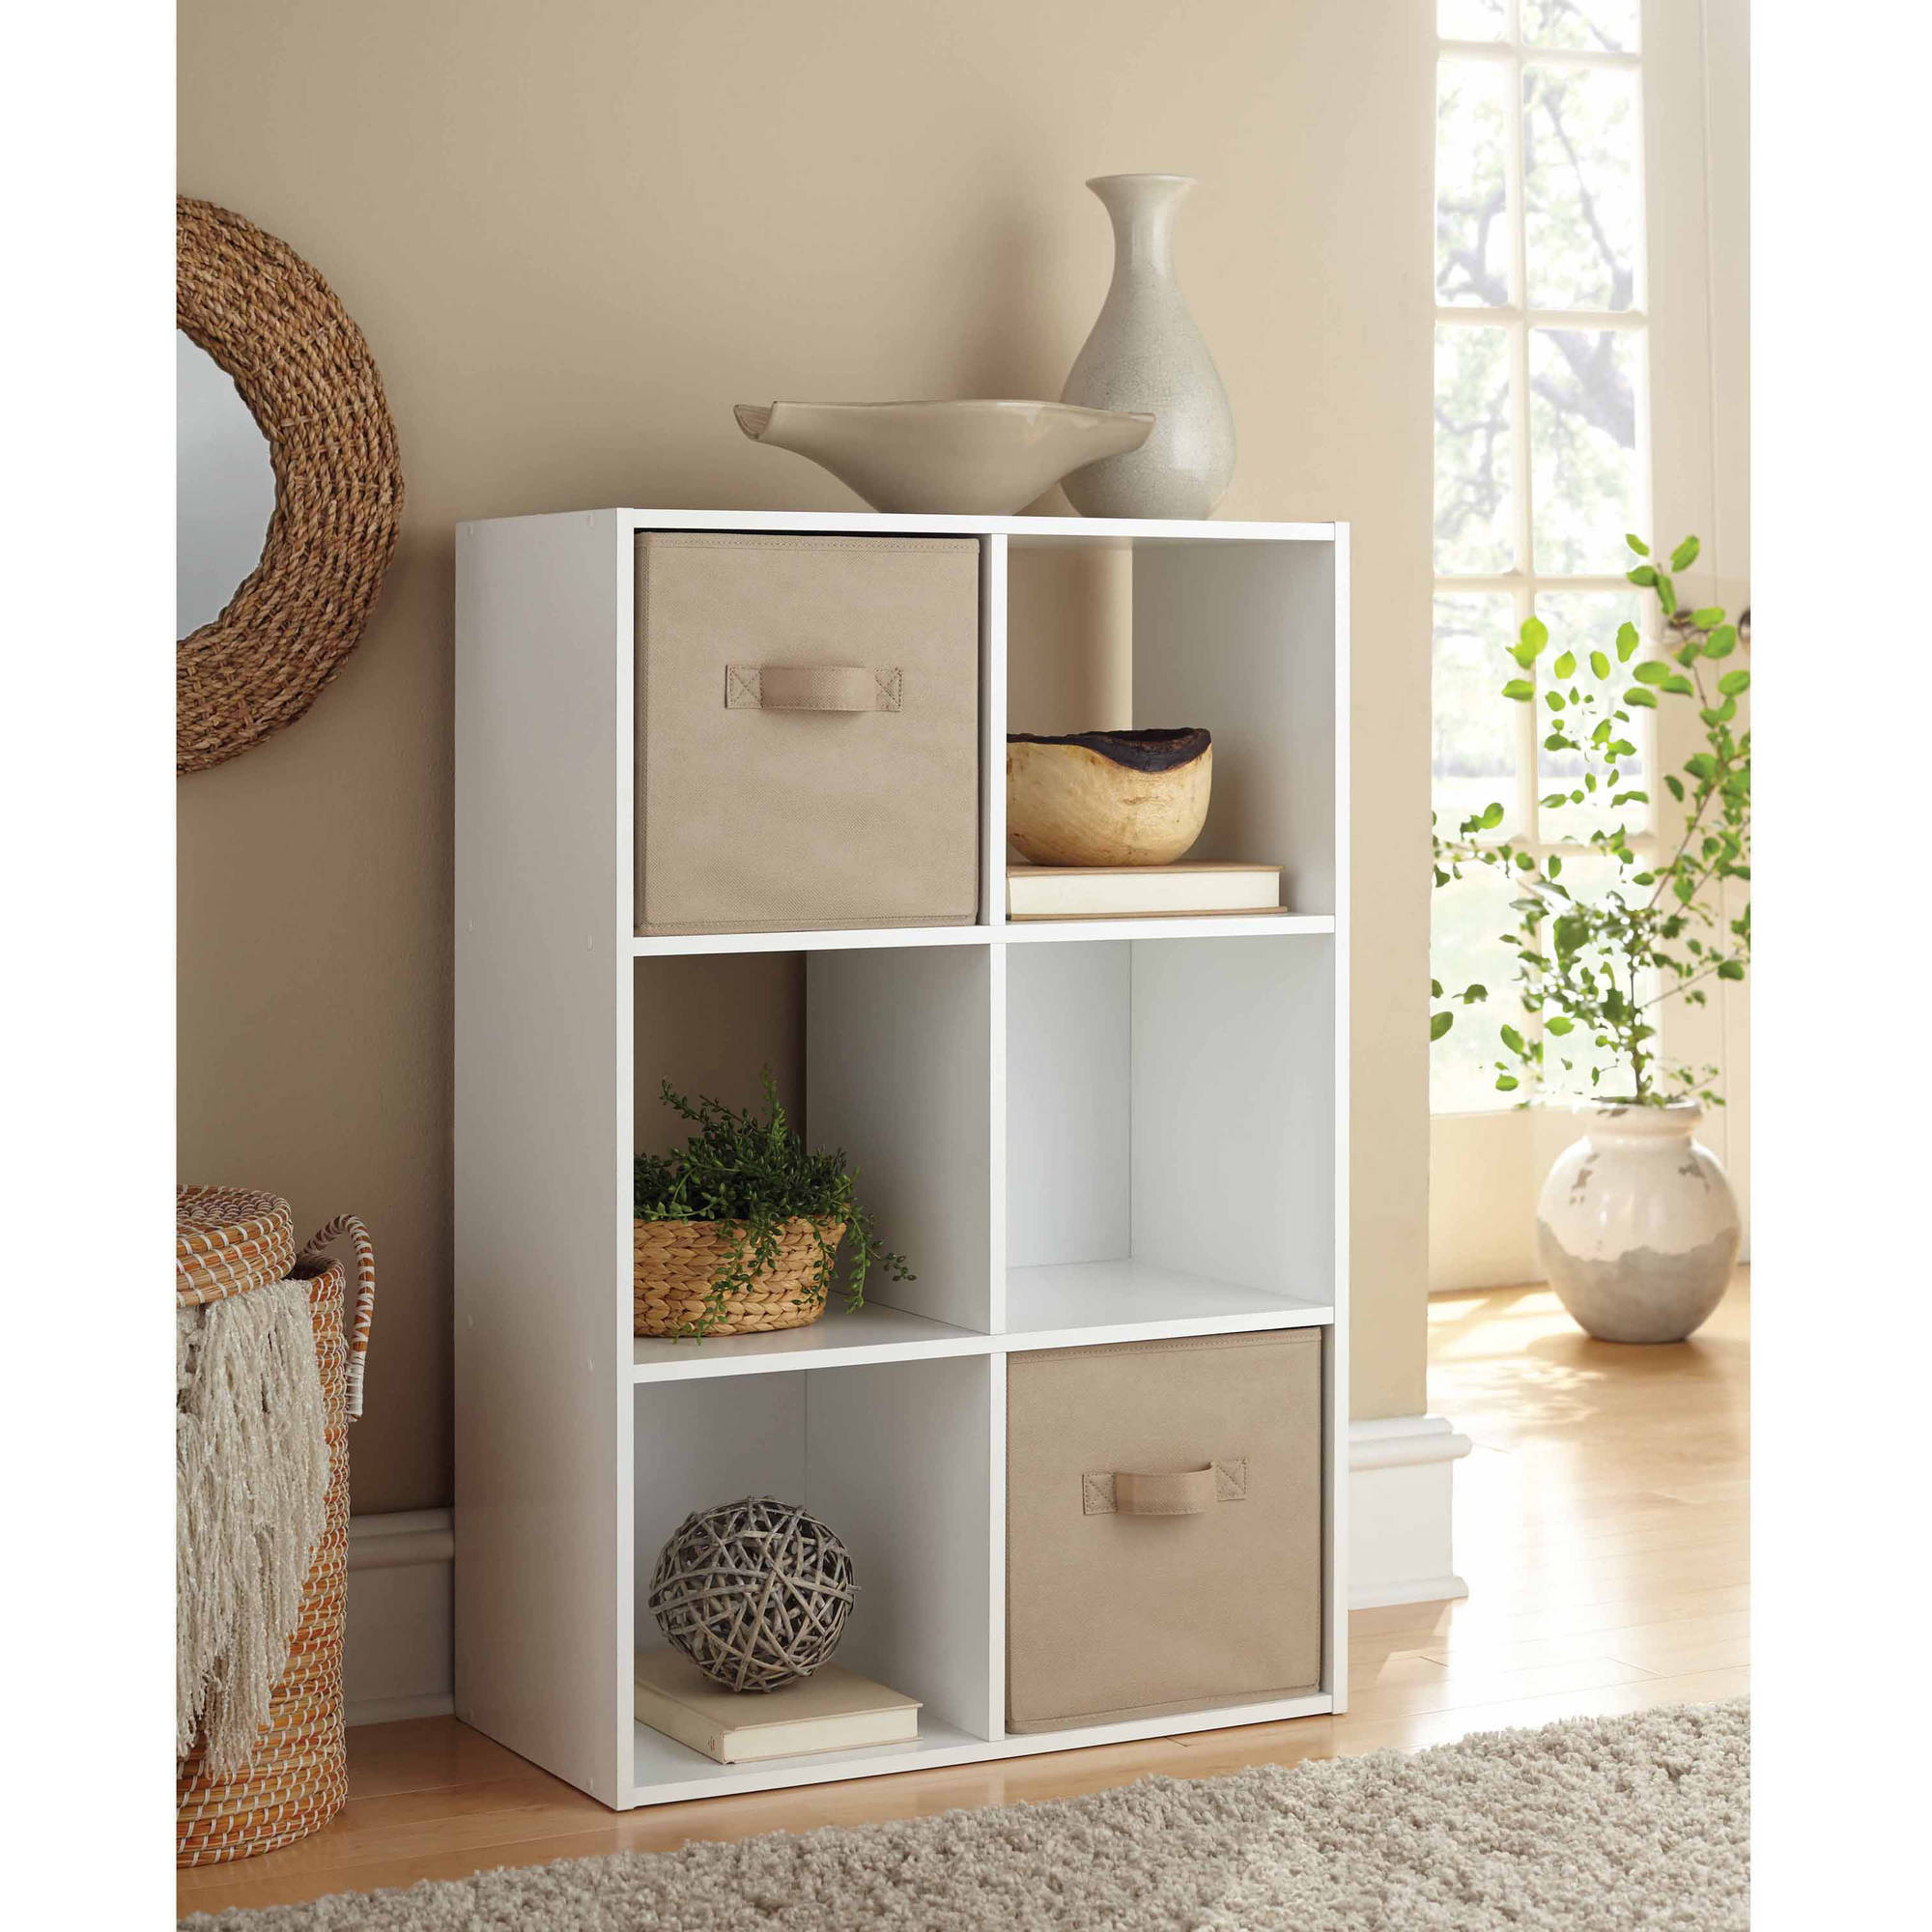 Clothes Shelves Walmart | Walmart Bathroom Shelves | Walmart Shelving